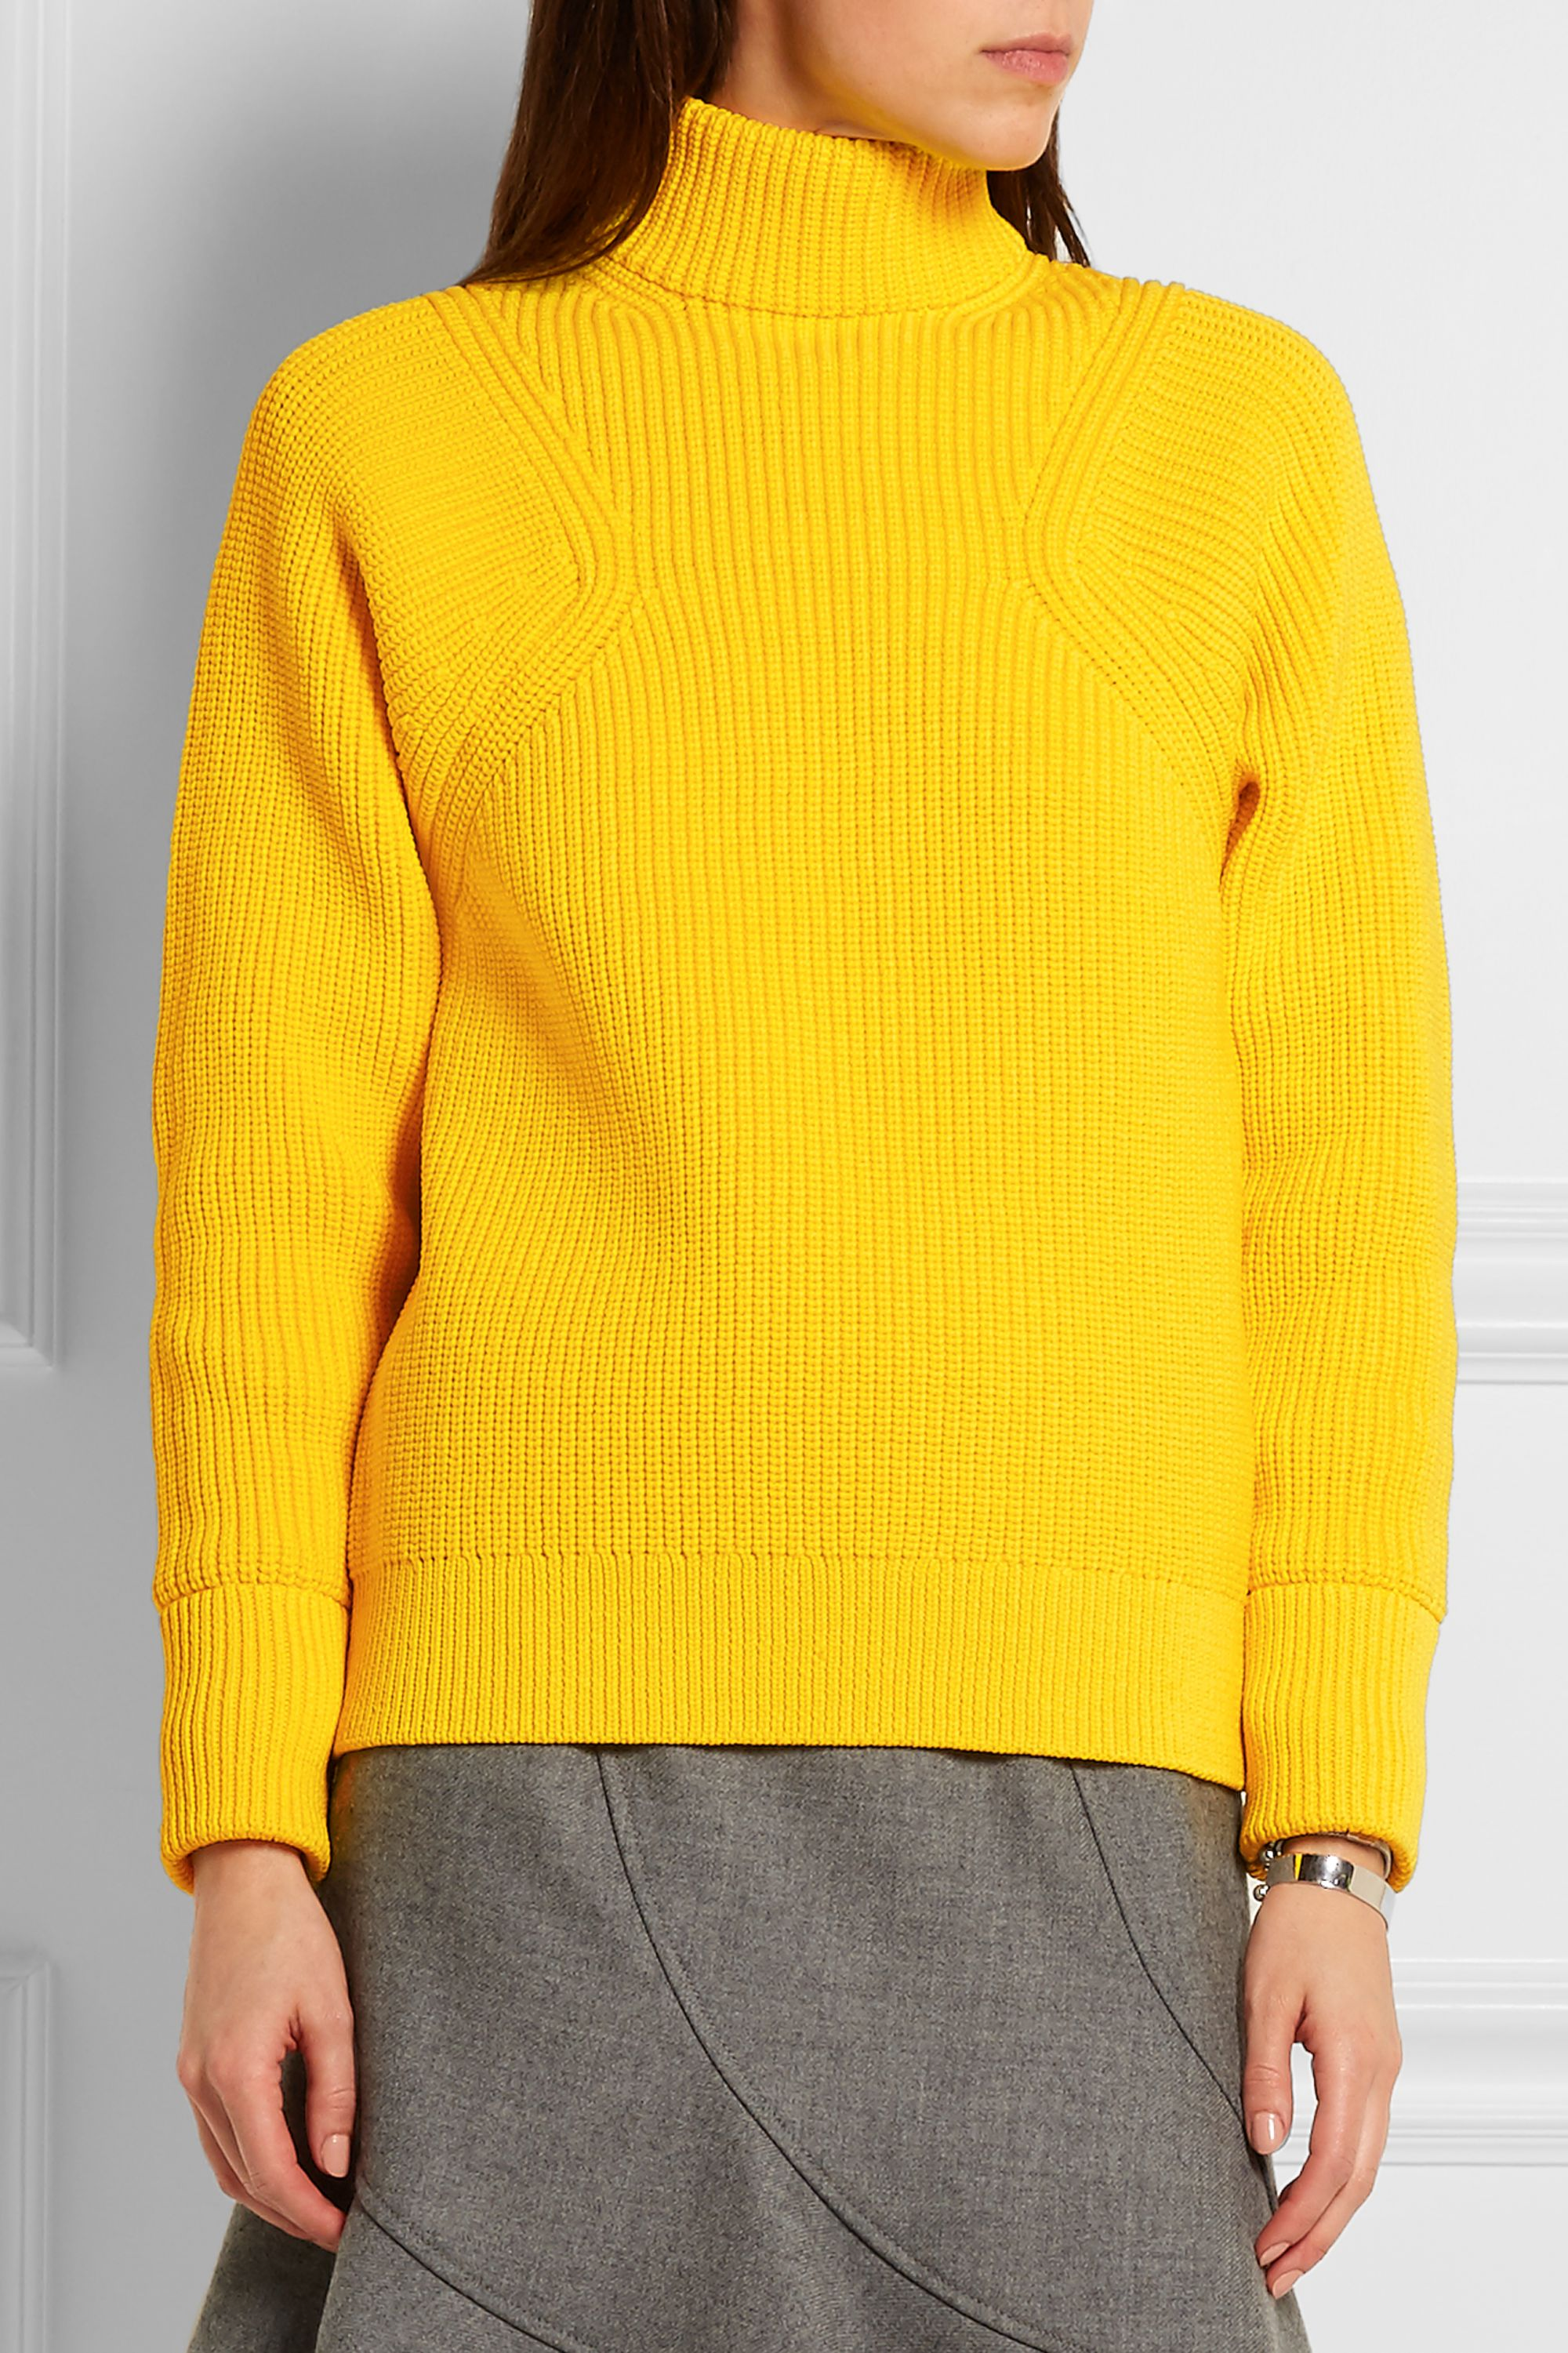 J.Crew Howden knitted turtleneck sweater